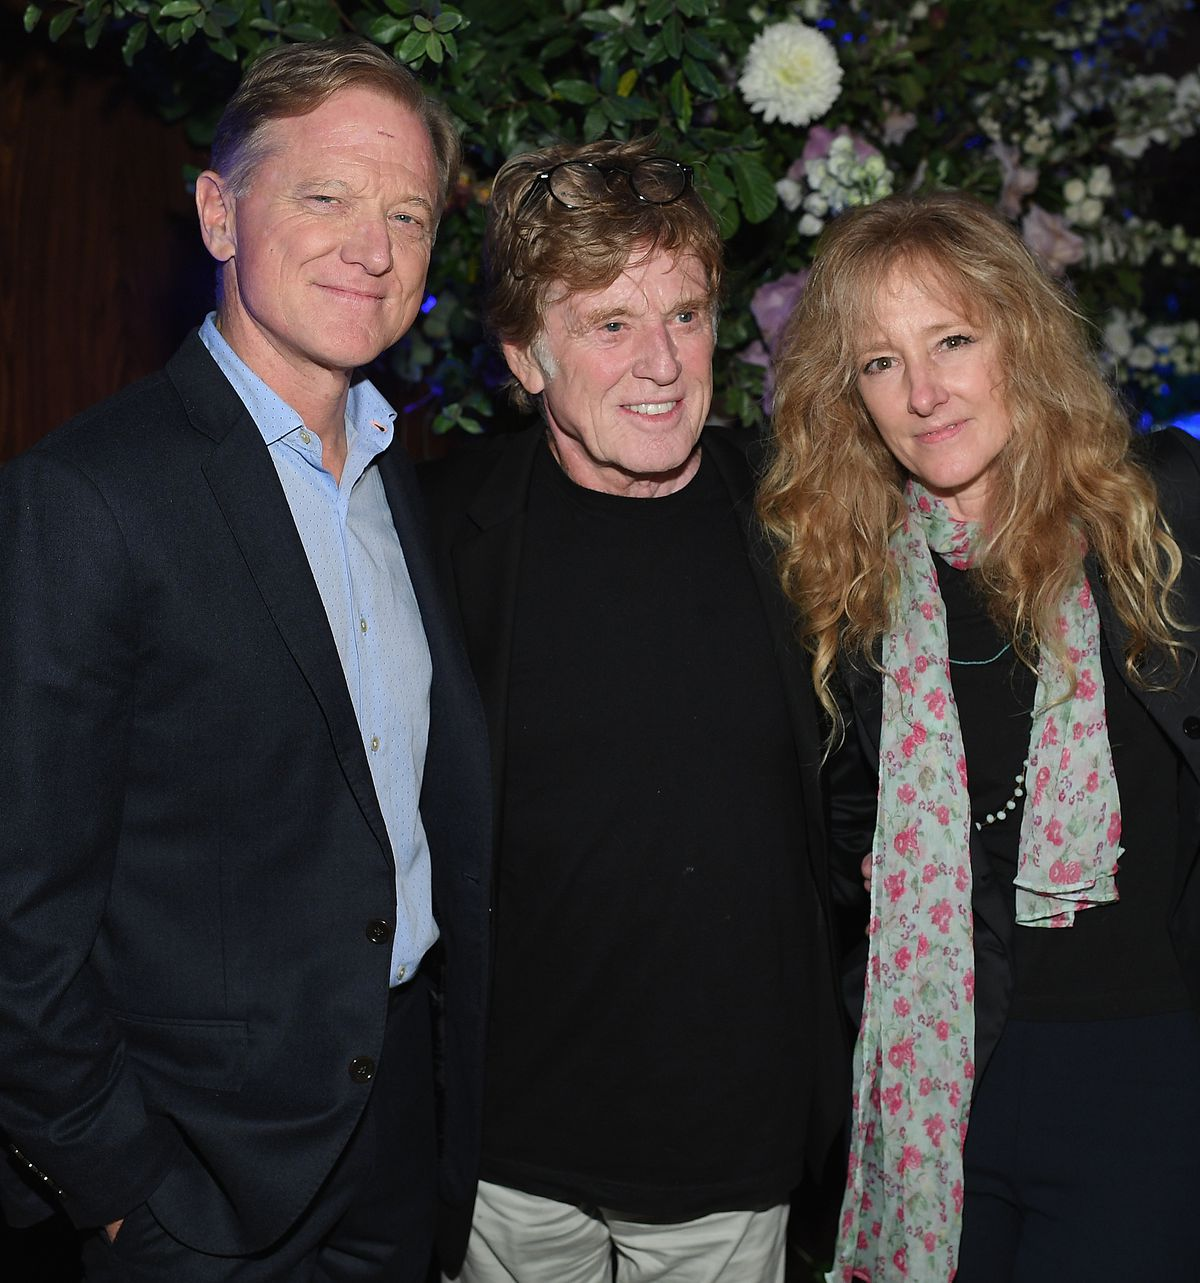 """James Redford (left) and his parents Robert Redford and Shauna Redford attend the premiere of """"Our Souls At Night"""" at at The Oak Room in 2017 in New York City."""